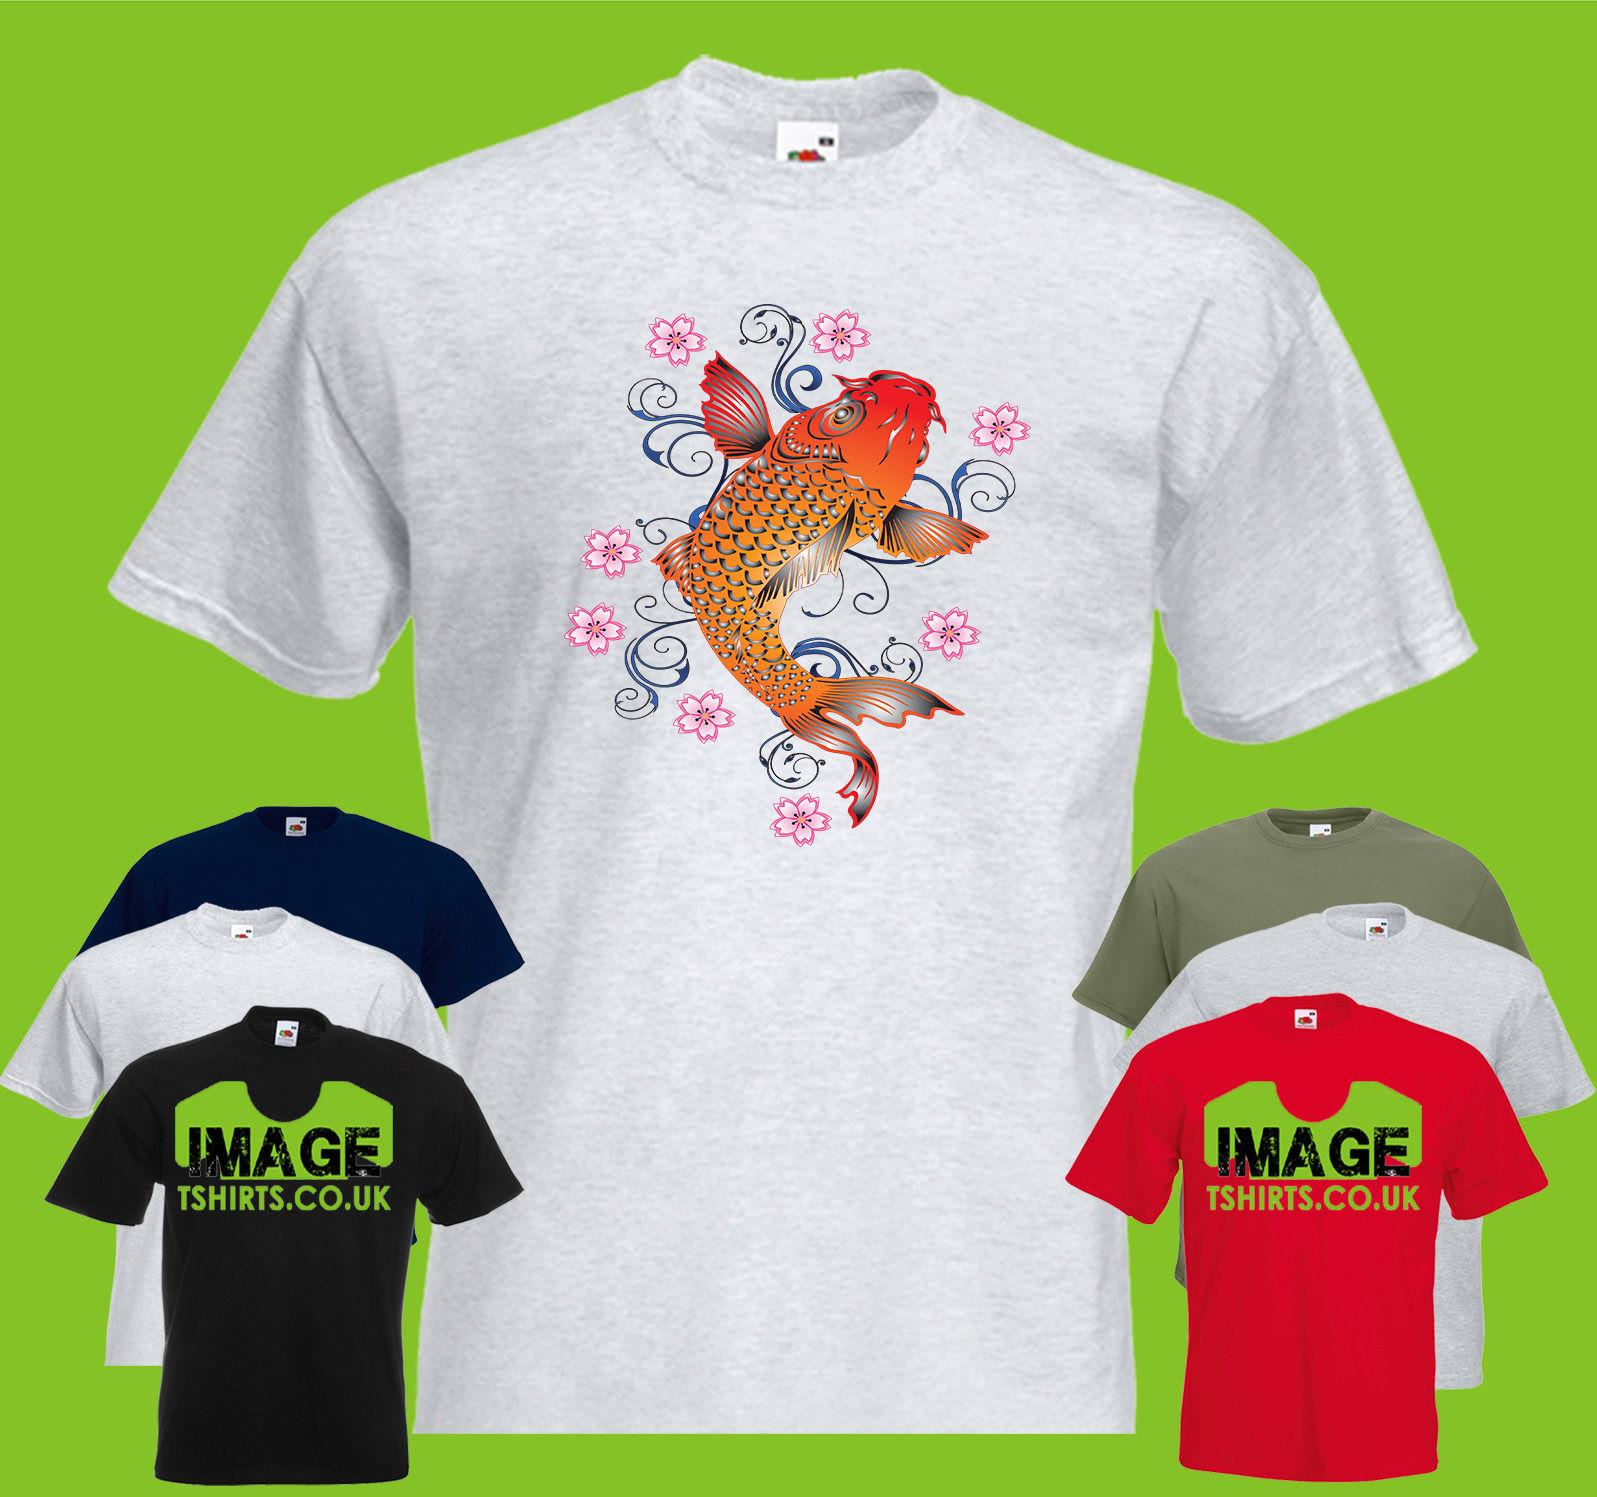 582ec88a Koi Fish Flowers Mens PRINTED T SHIRT Wildlife Animal Japanese Swim Funny  Casual Tee T Shirts Shopping Online T Shirts Sites From Fatcuckoo, $12.96|  DHgate.